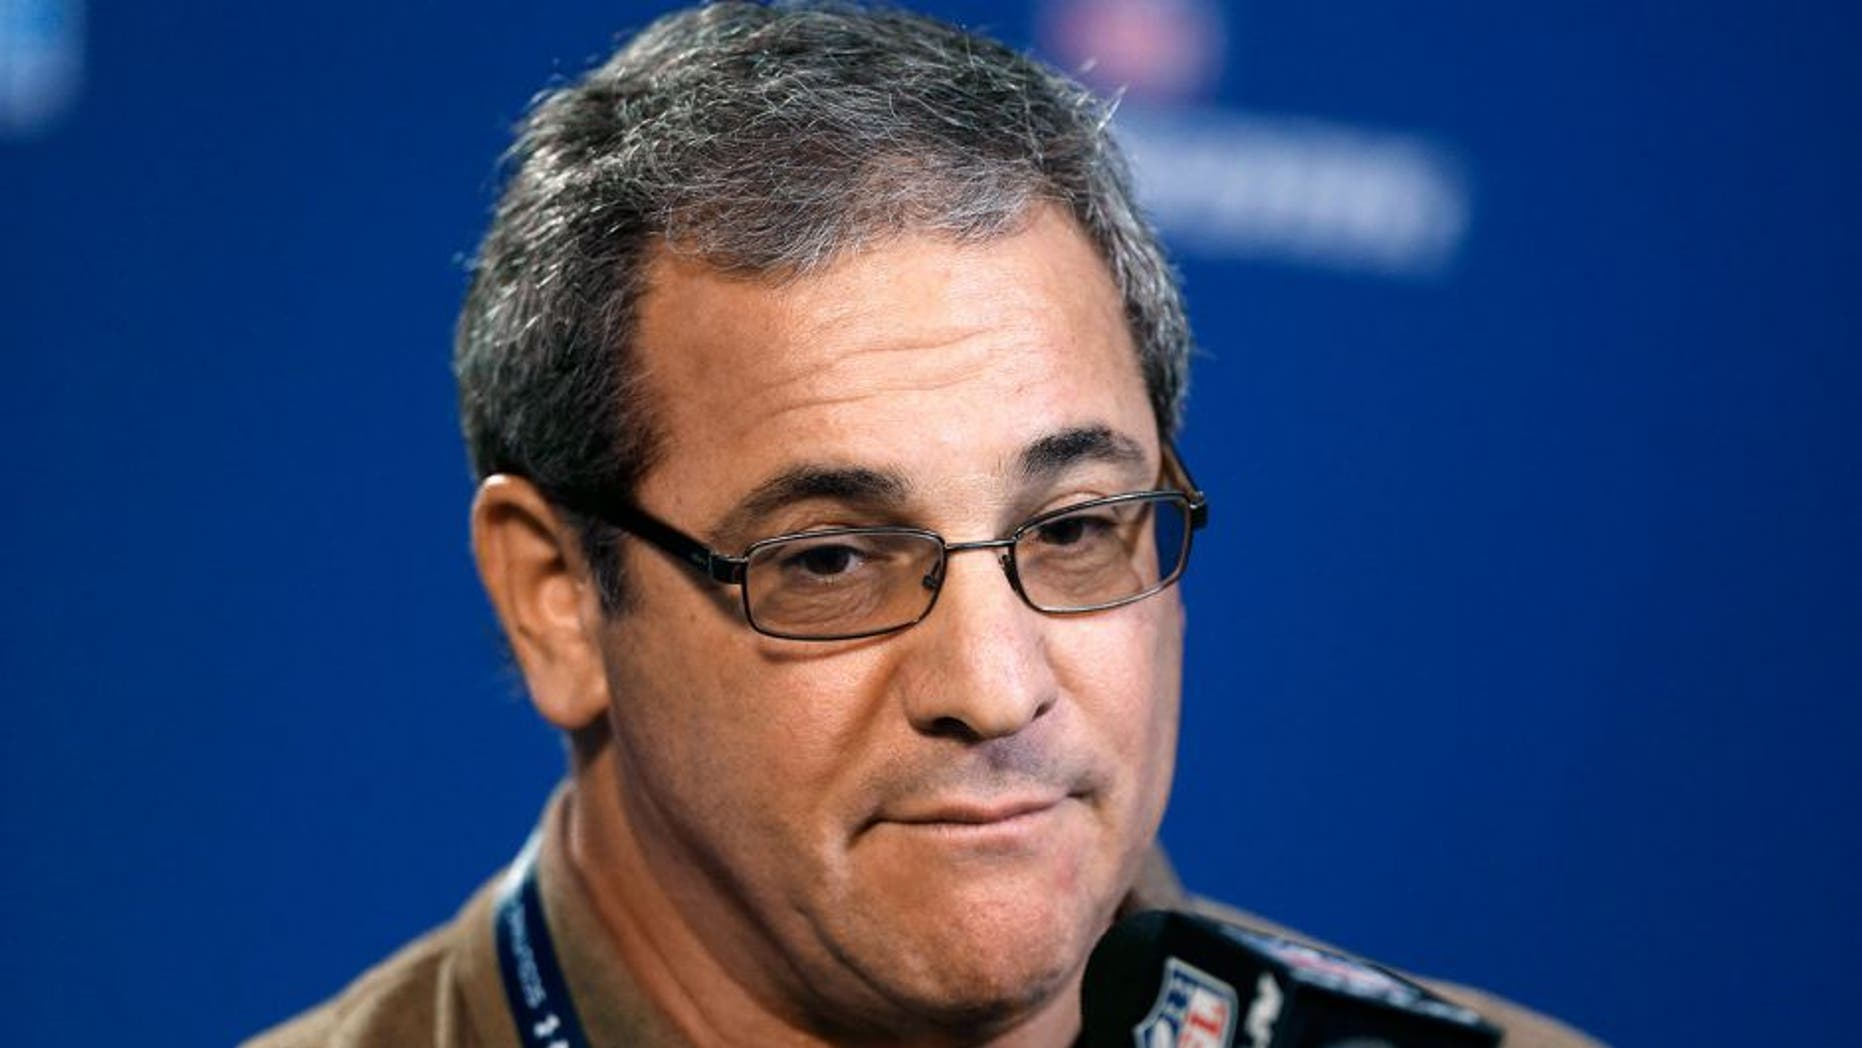 Feb 20, 2014; Indianapolis, IN, USA; Carolina Panthers general manager Dave Gettleman speaks during a press conference during the 2014 NFL Combine at Lucas Oil Stadium. Mandatory Credit: Brian Spurlock-USA TODAY Sports